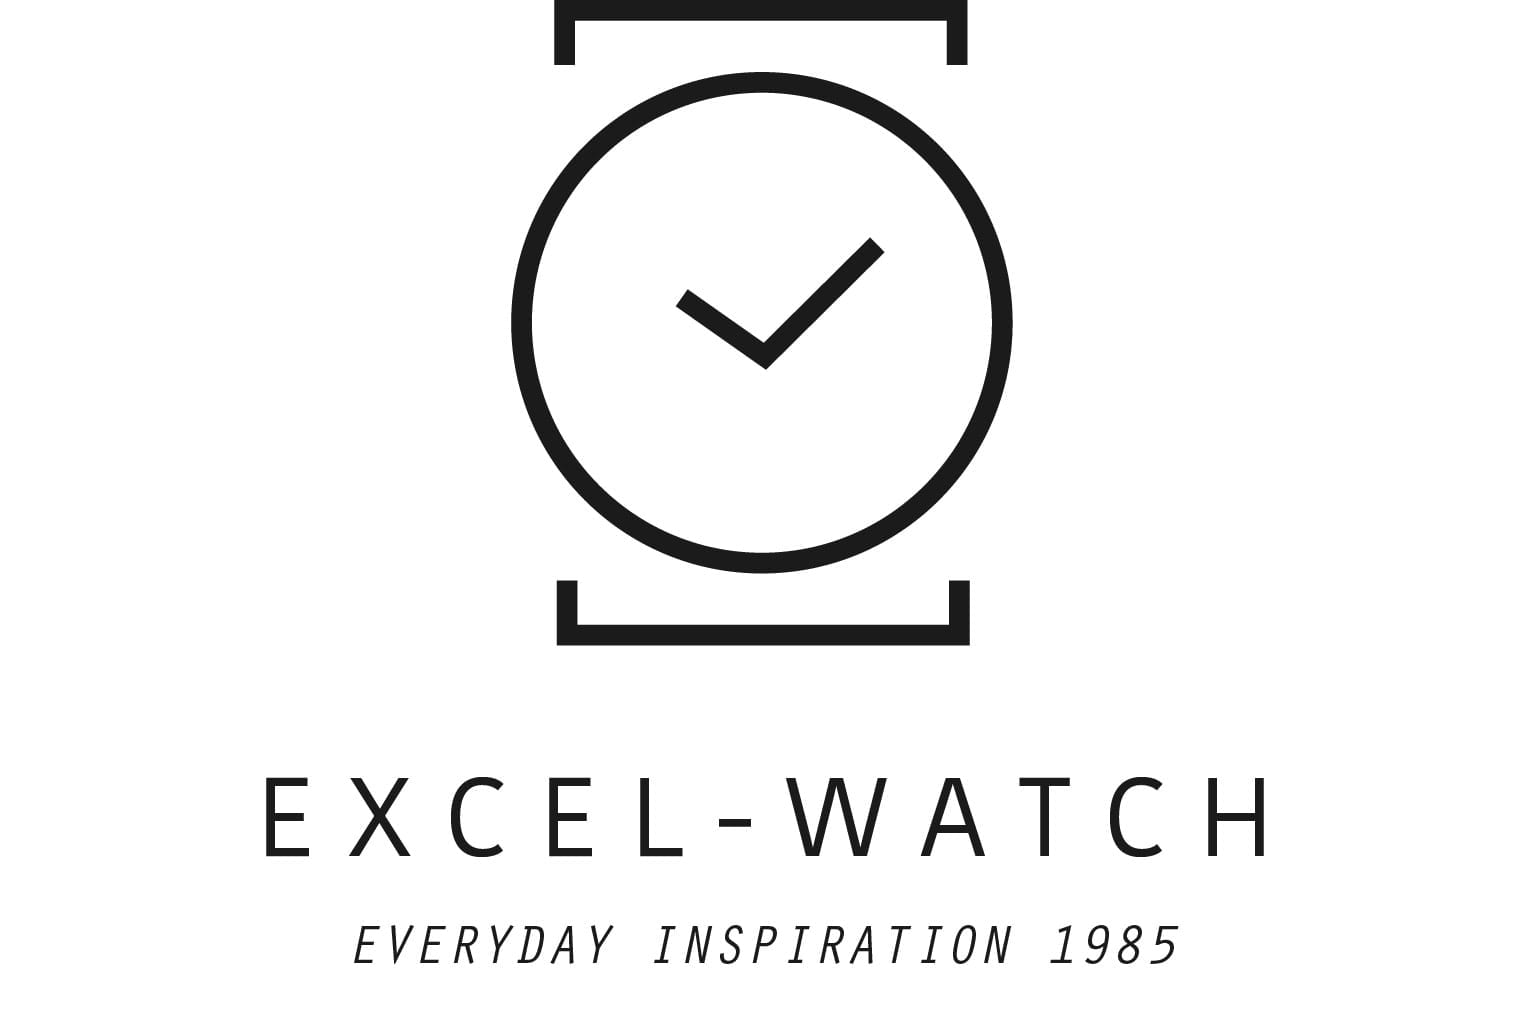 Excel-Watch Official